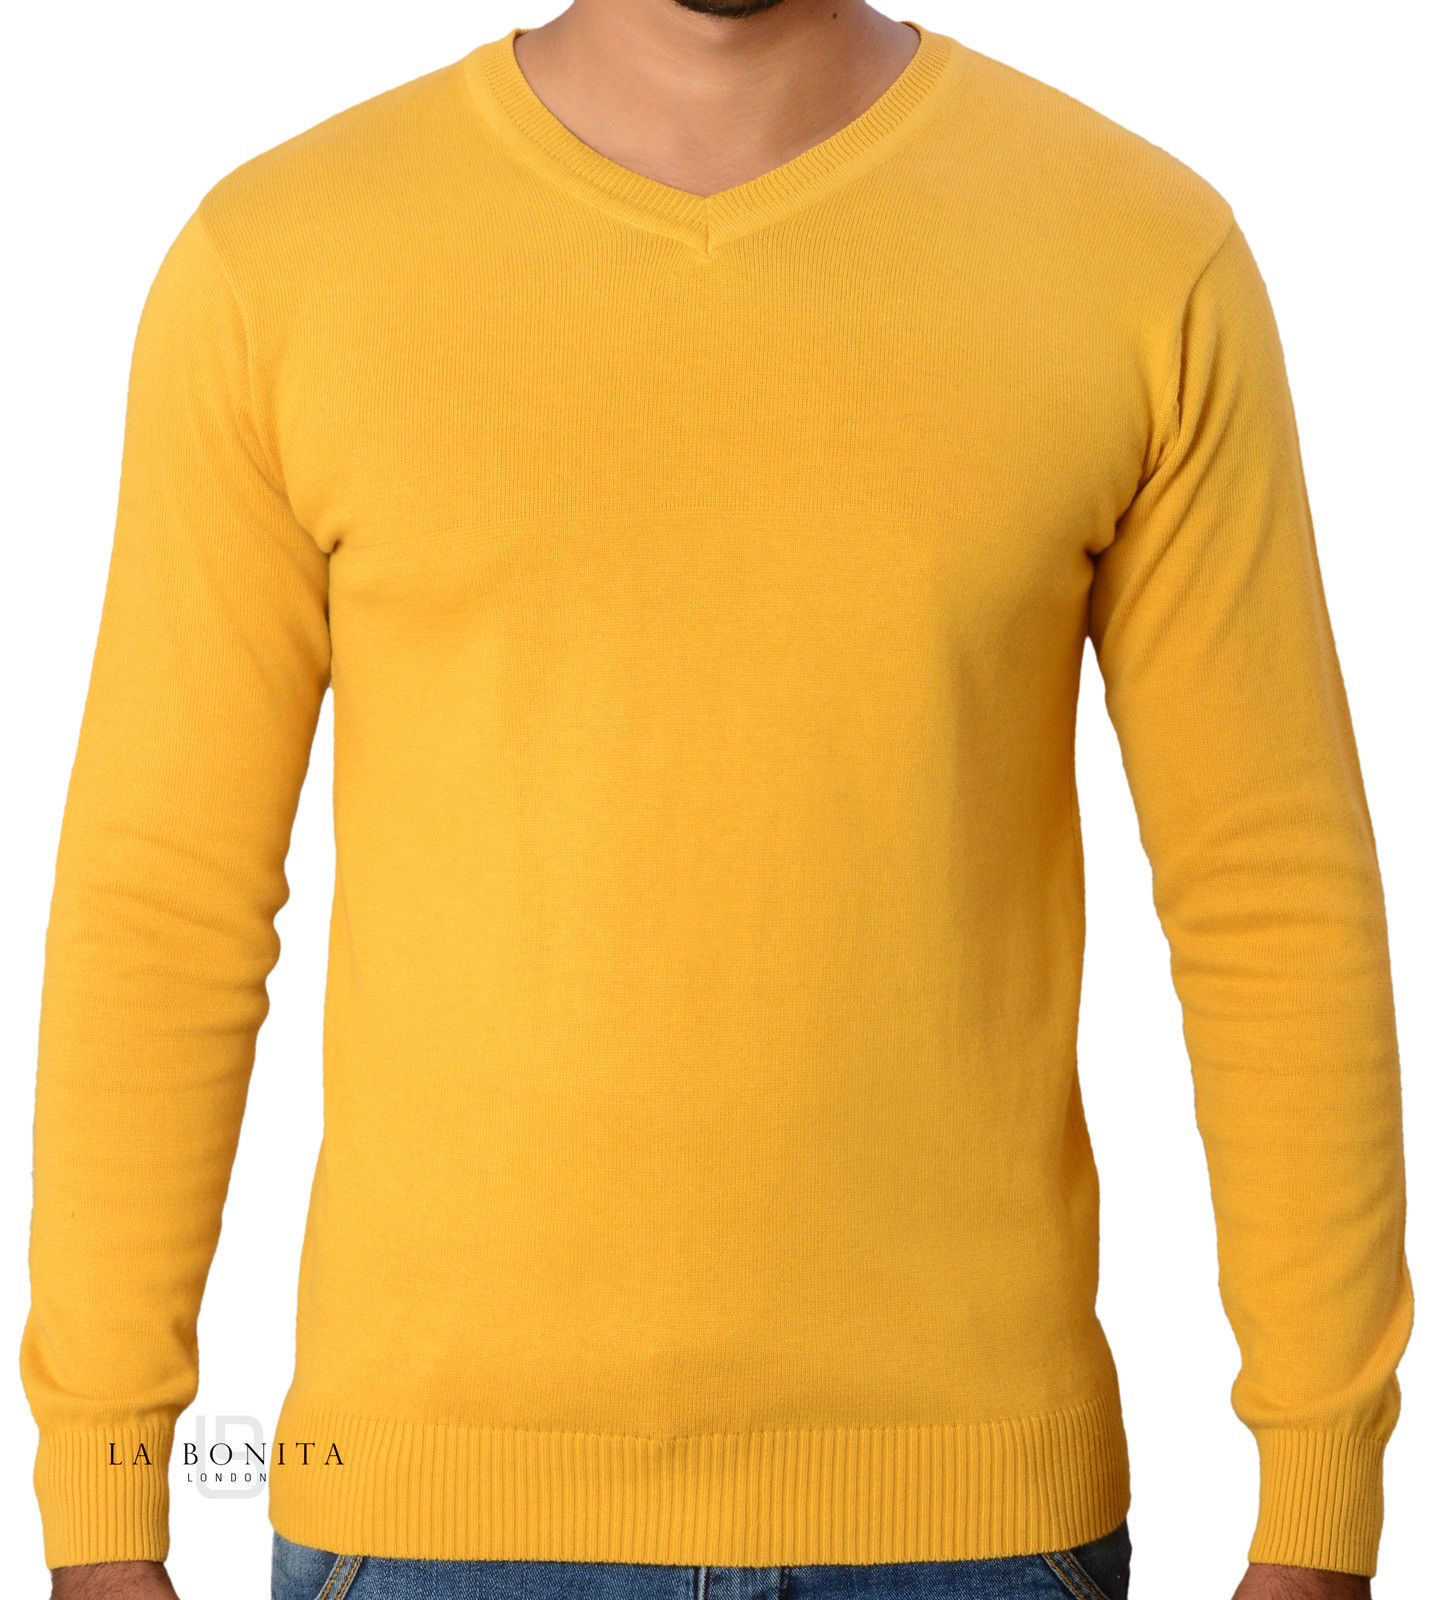 Hot Fashion 2016 Casual Men's Plain Yellow V-Neck Pullover Sweater ...